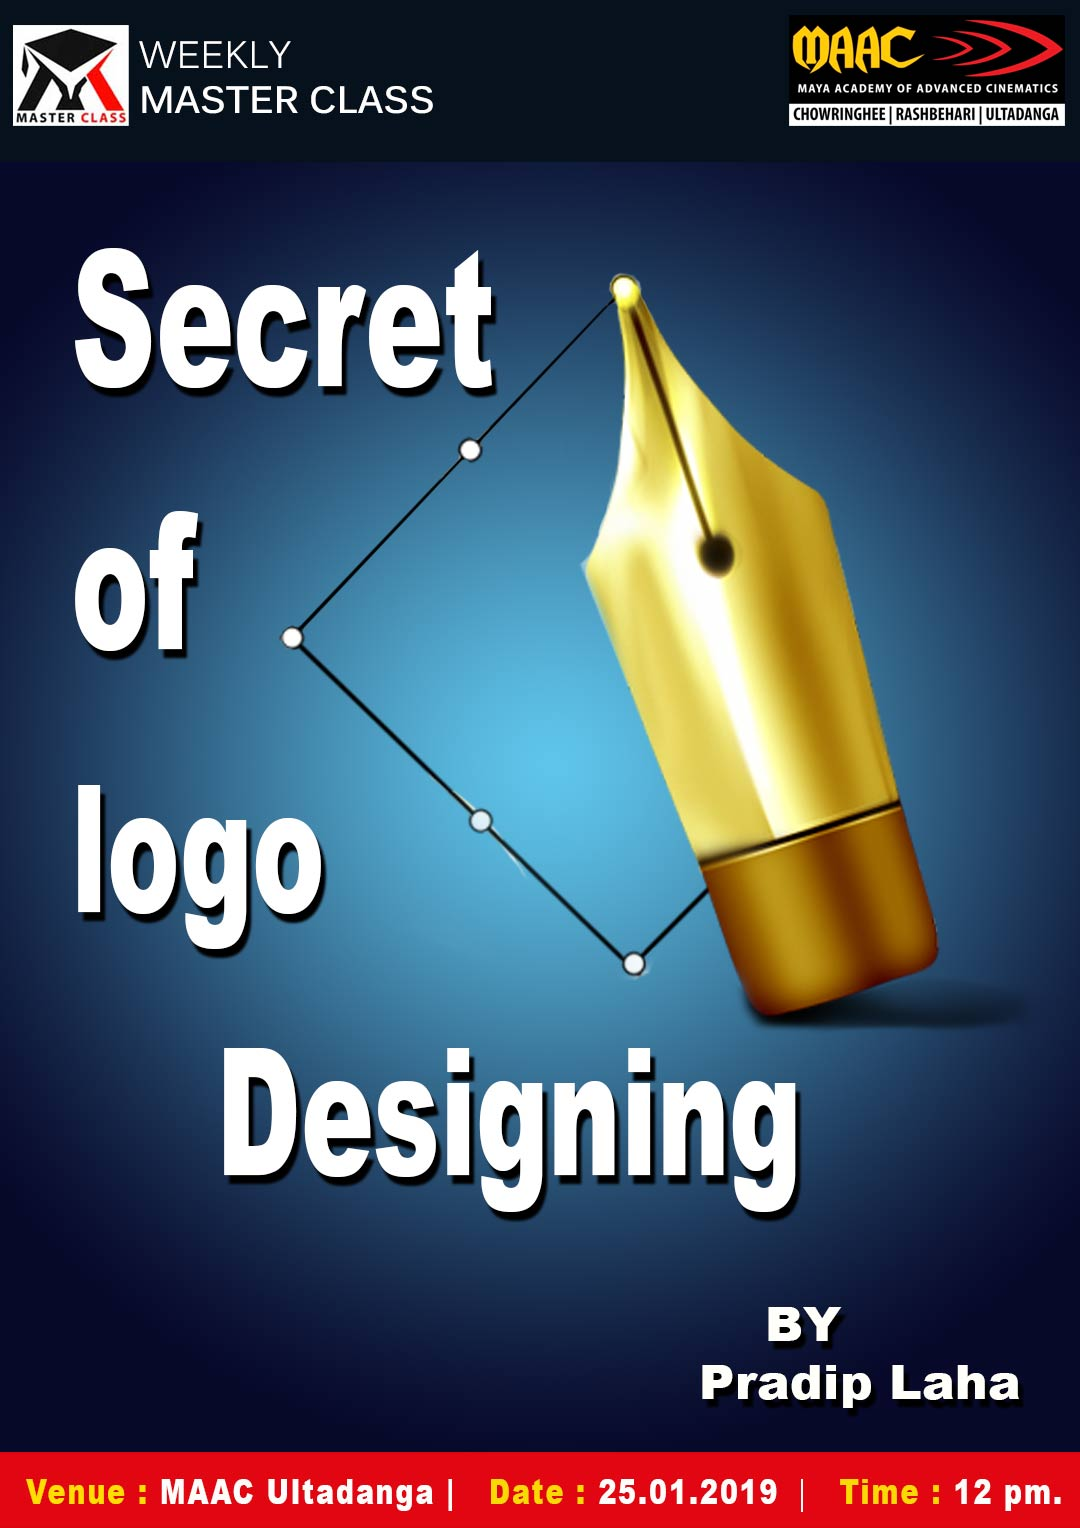 Weekly Master Class on Secret of Logo Designing